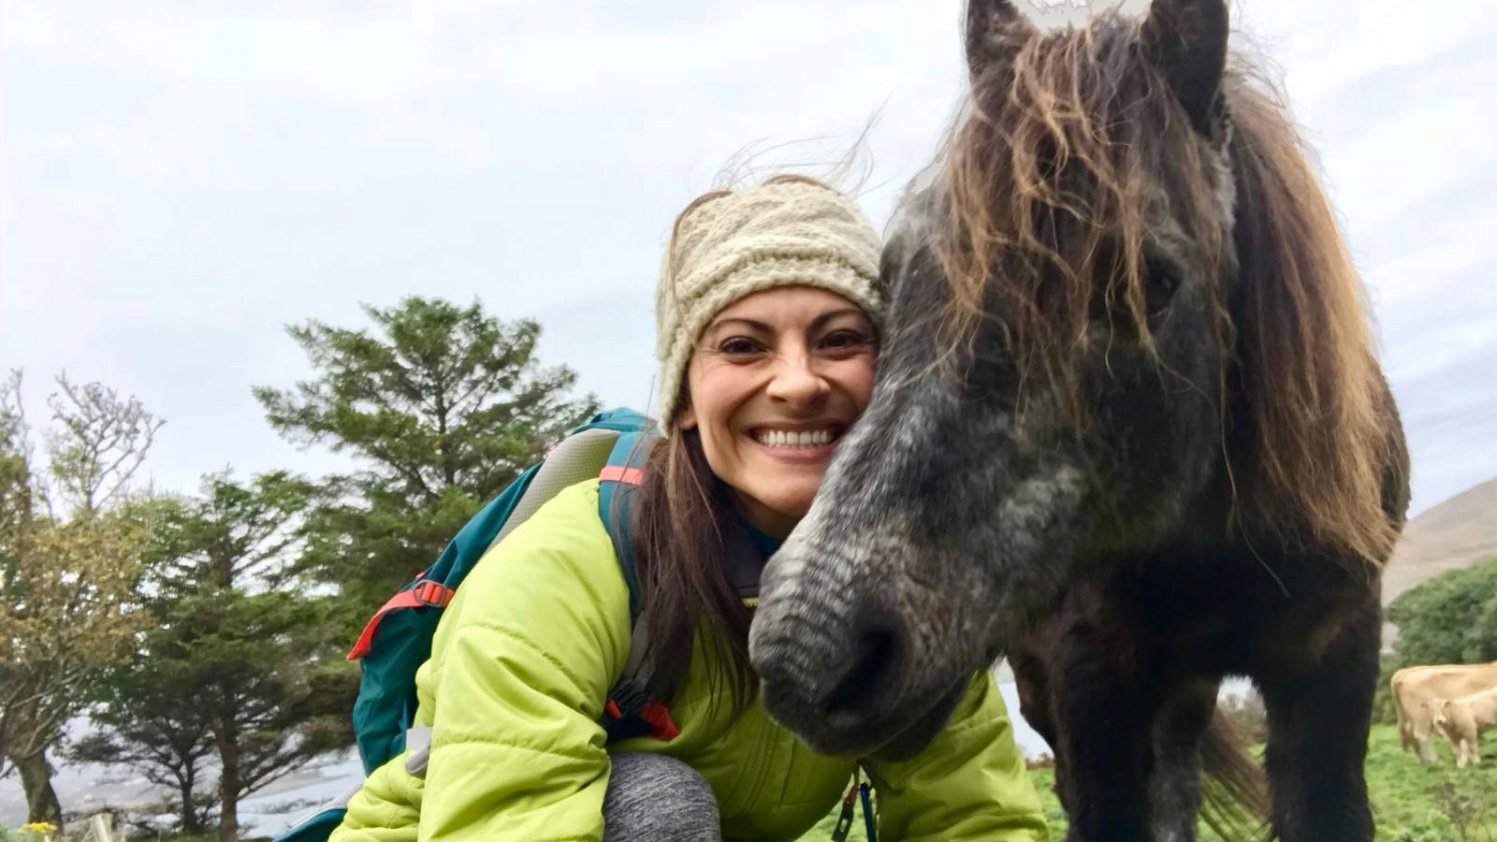 Vagabond guest poses for a selfie with a pony